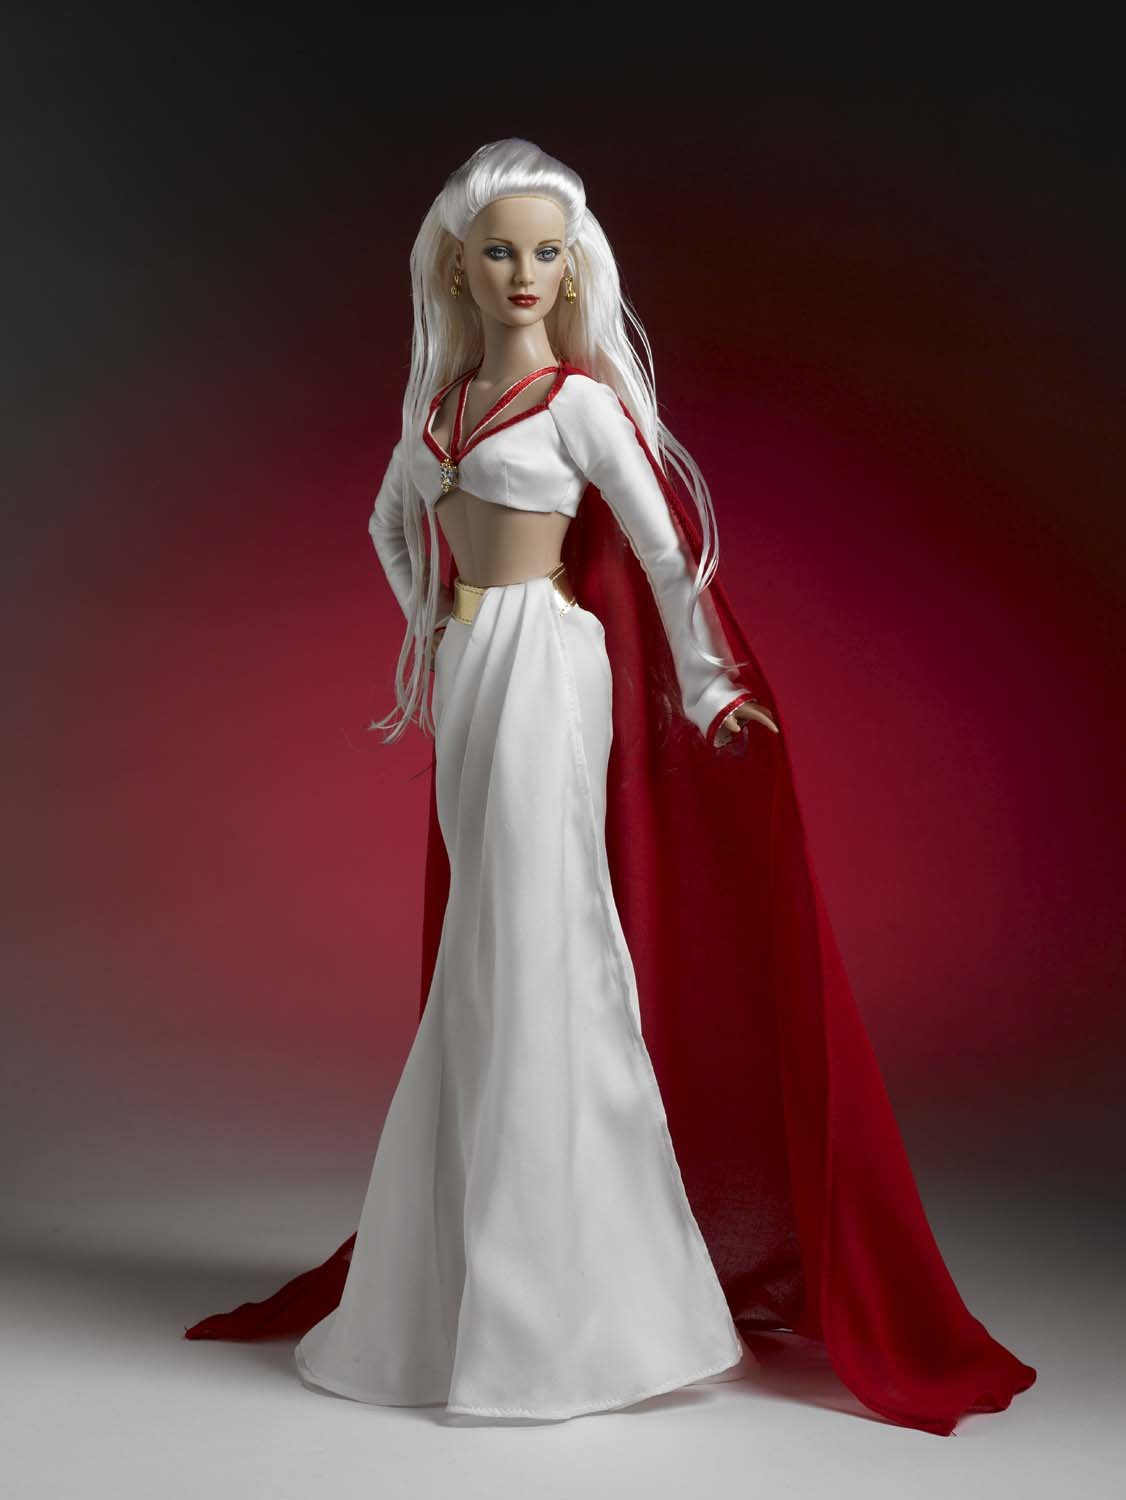 Enchanting Supergirl Dressing Gown Inspiration - Ball Gown Wedding ...